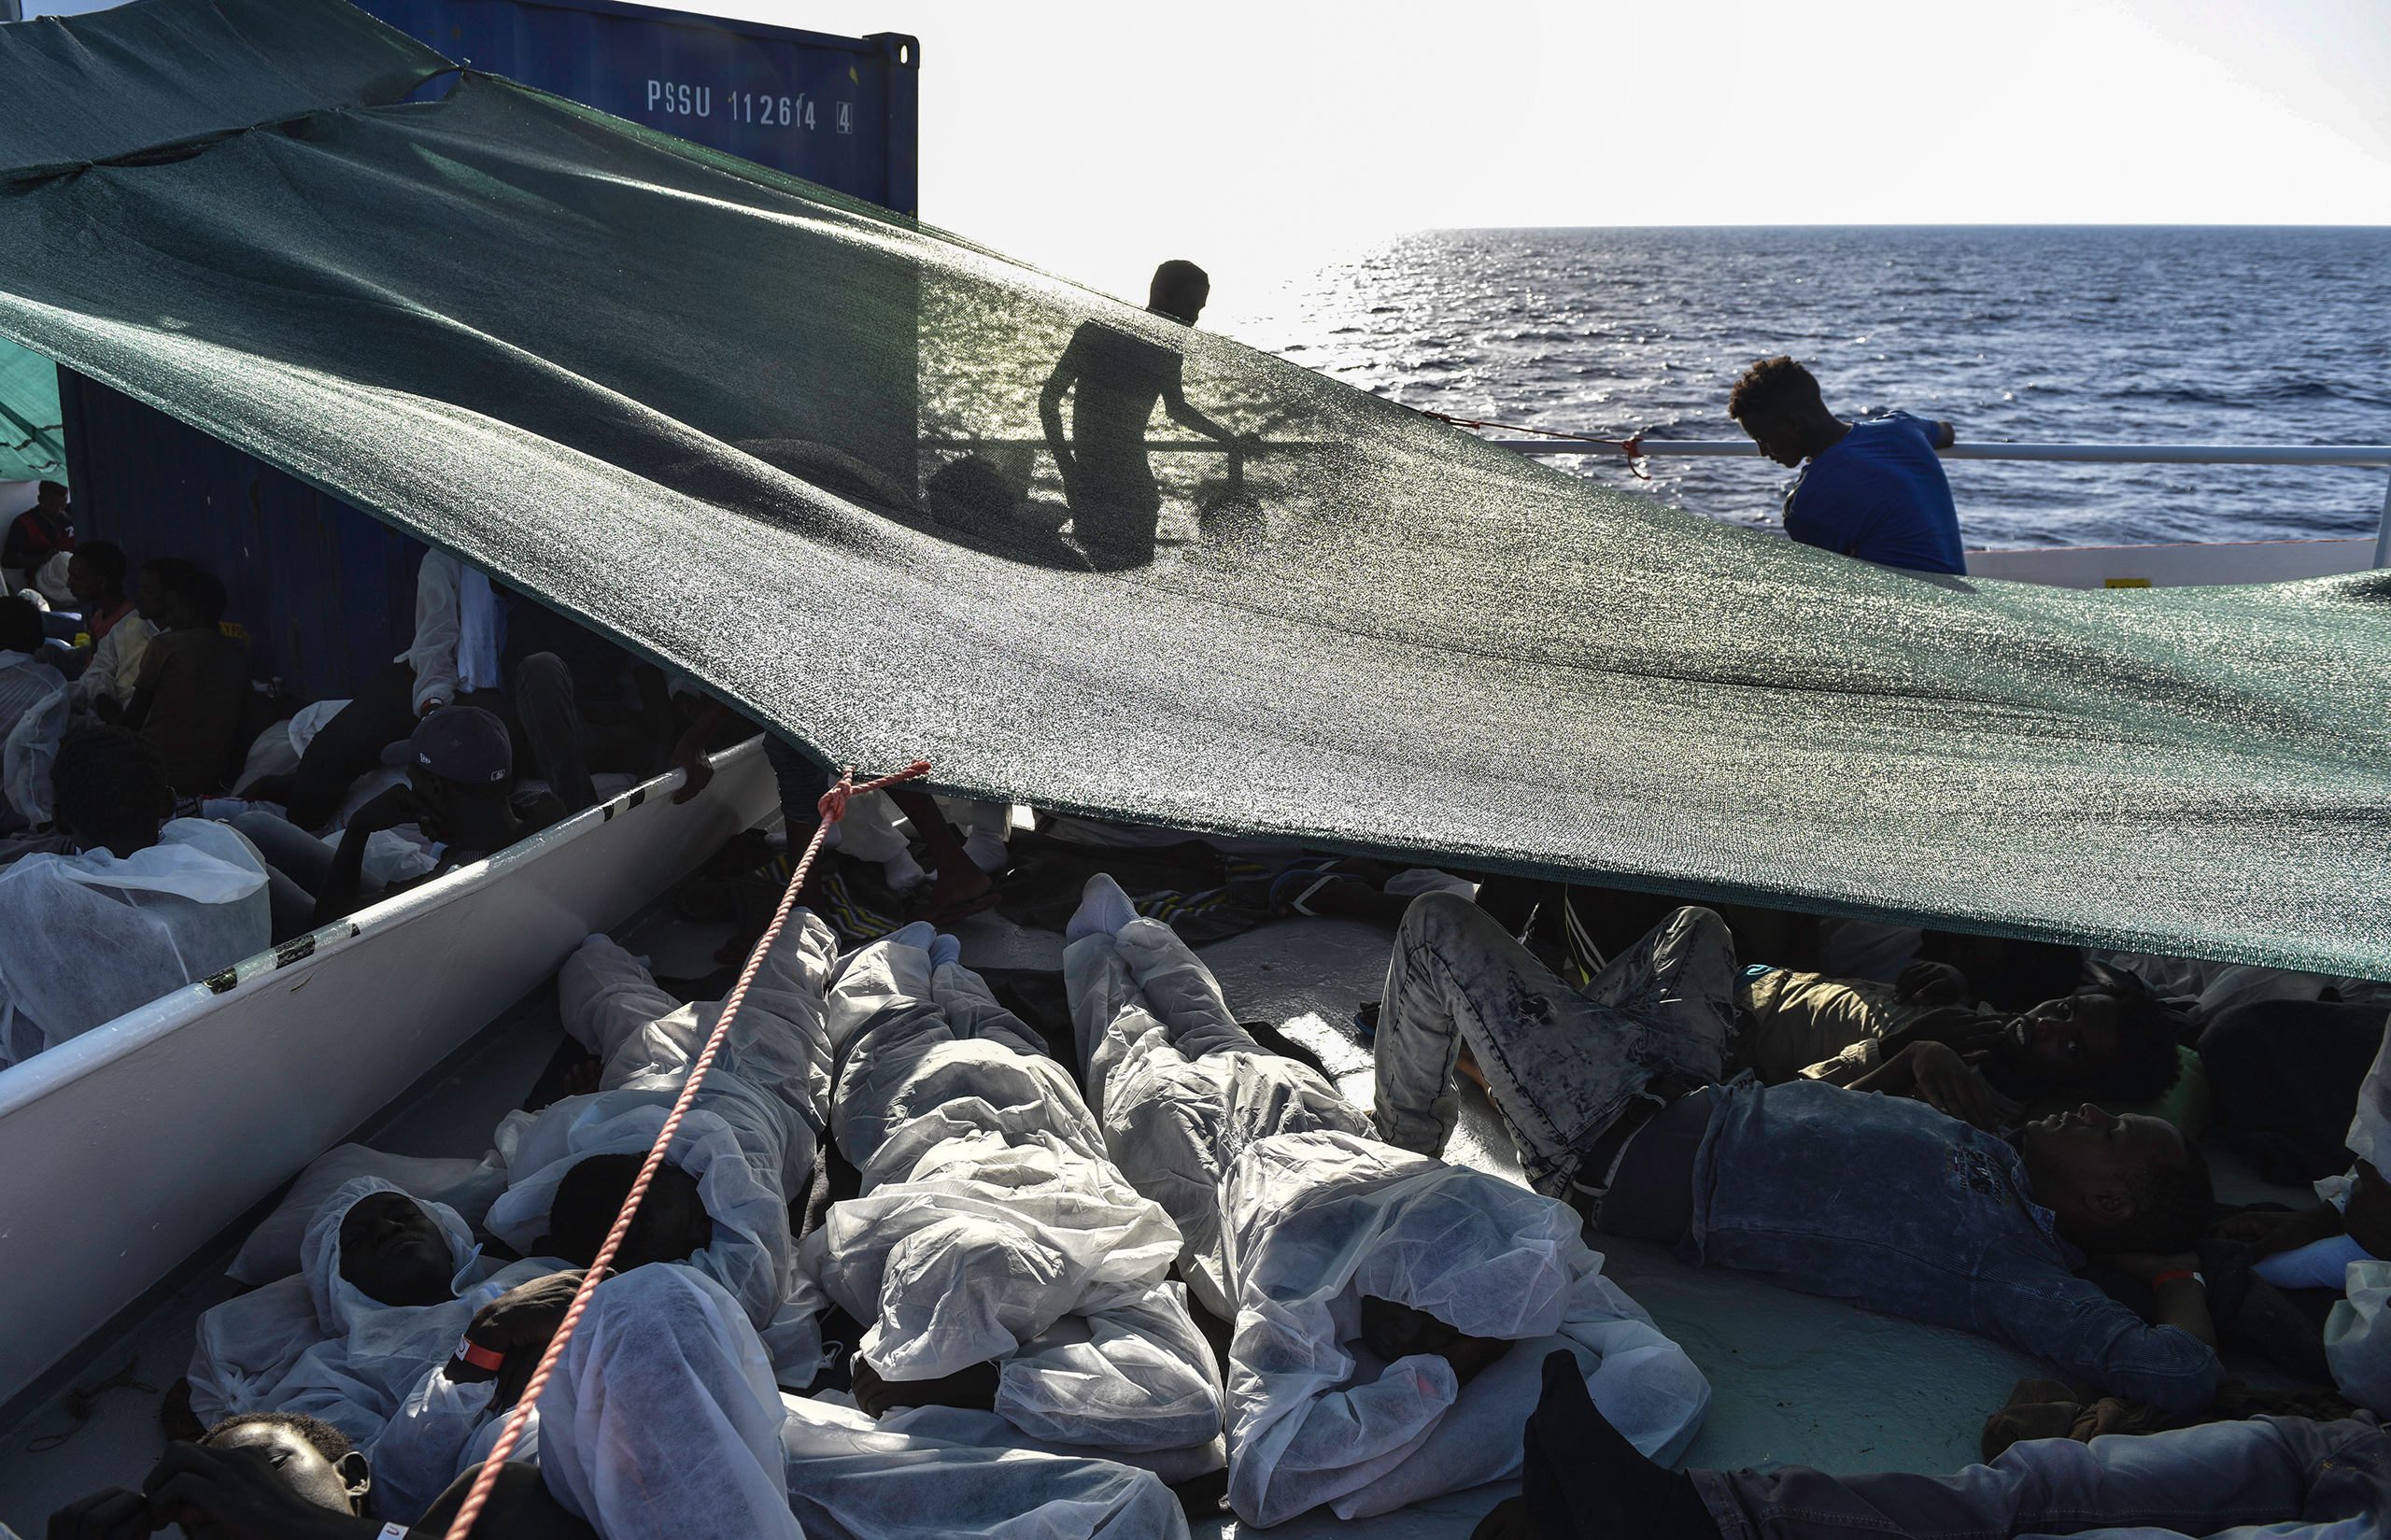 Migrants settle on the deck of the MV Aquarius ship on the eve of the rescue, Aug. 21, 2016.